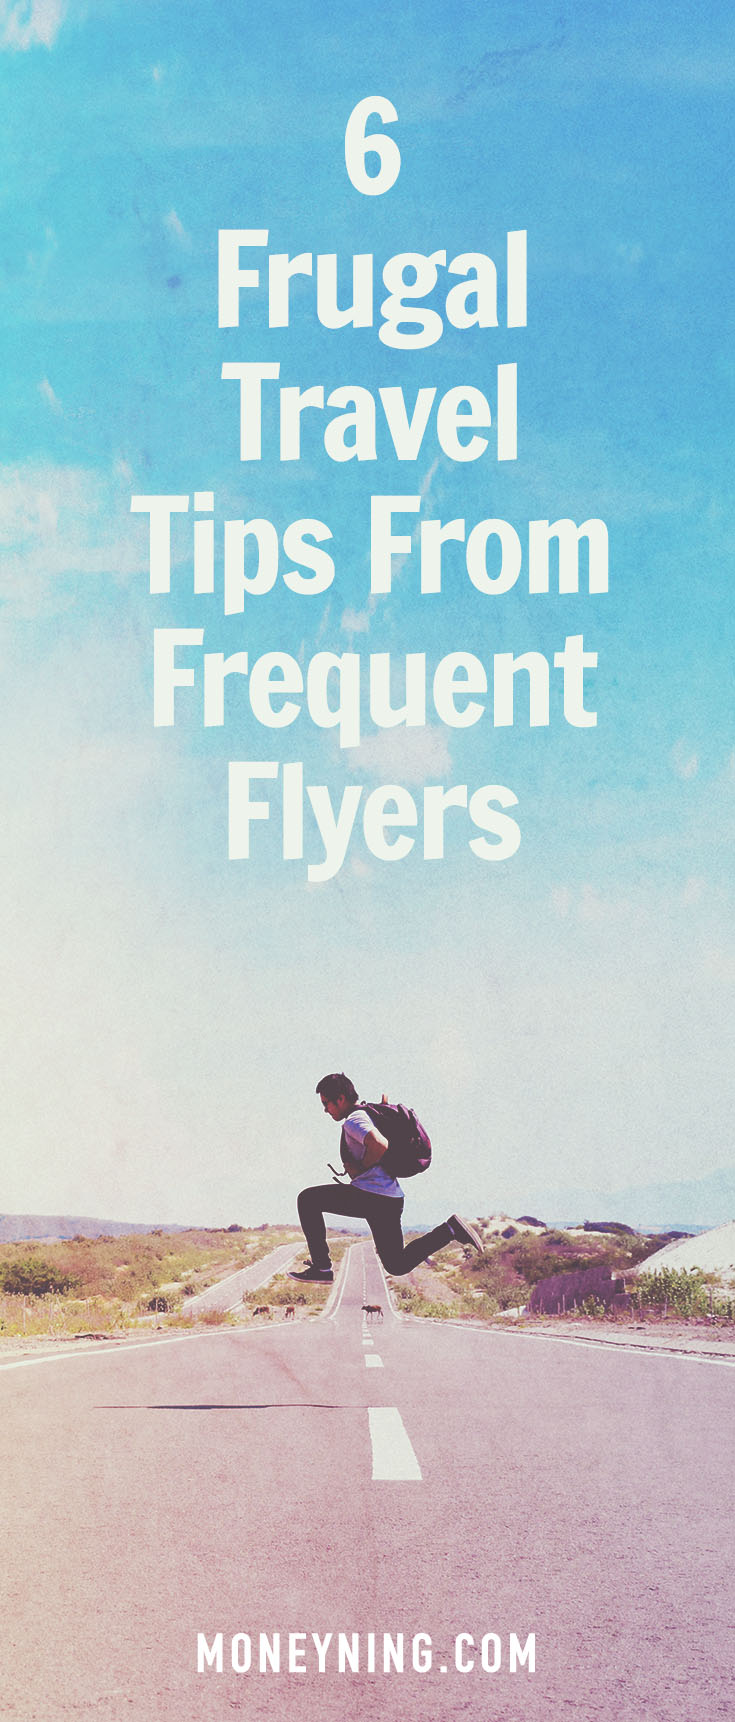 frugal flyers